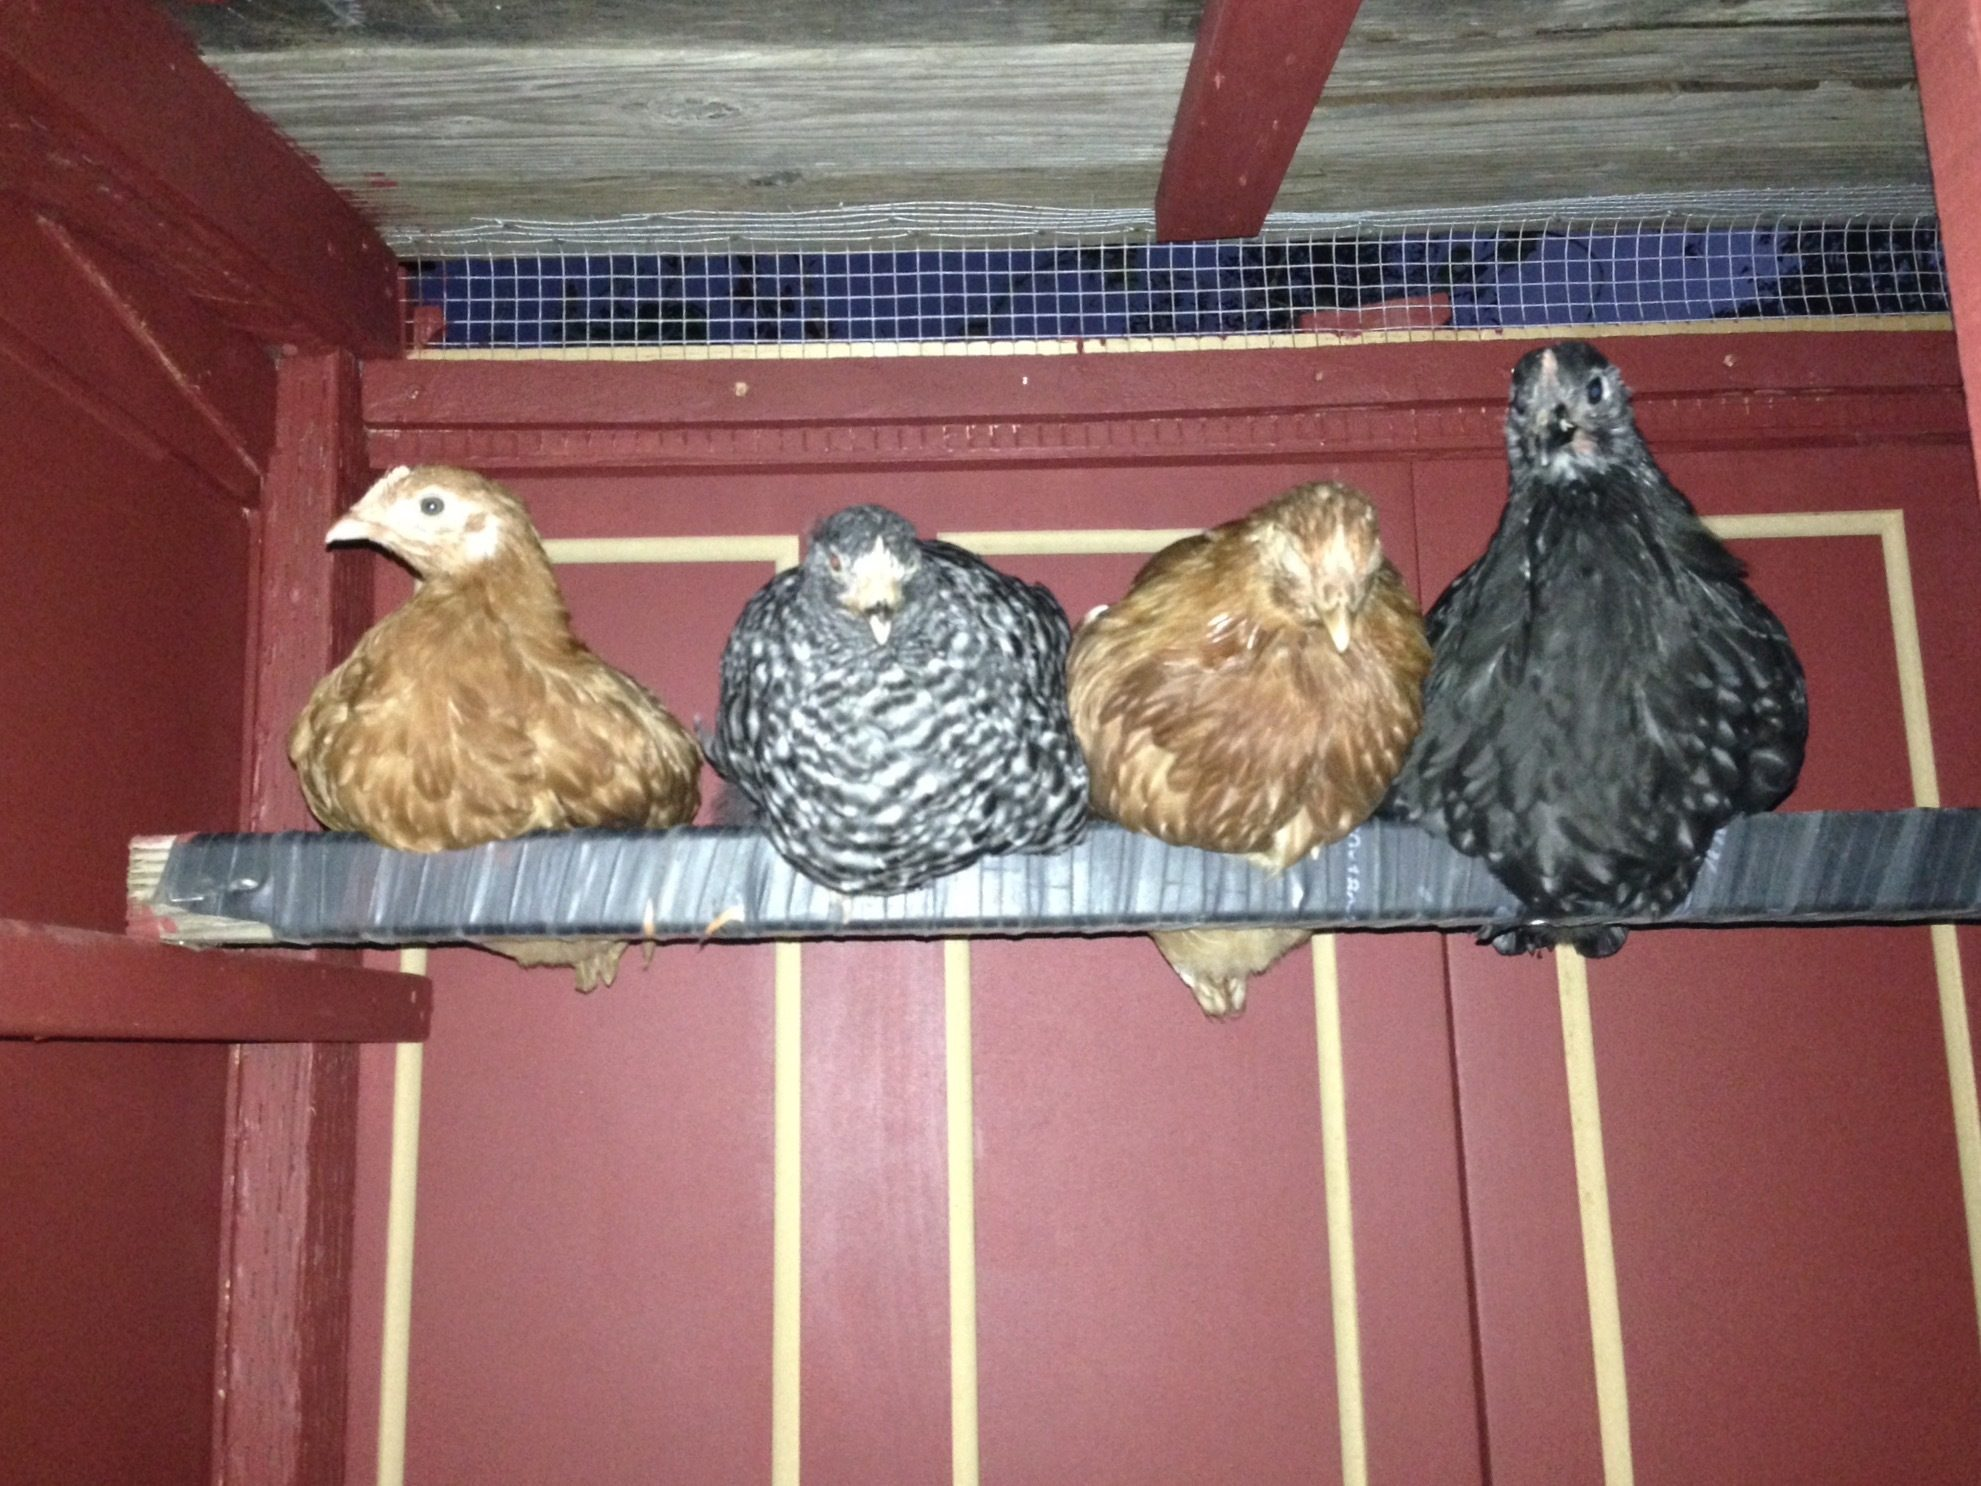 Four new pullets, all of different breeds I didn't have yet! One New Hampshire Red, one Barred Rock, one golden sexlink, and one Australorp. Here they are in their new 2x4 coop. Their roost has inner tube wrapped around it too.